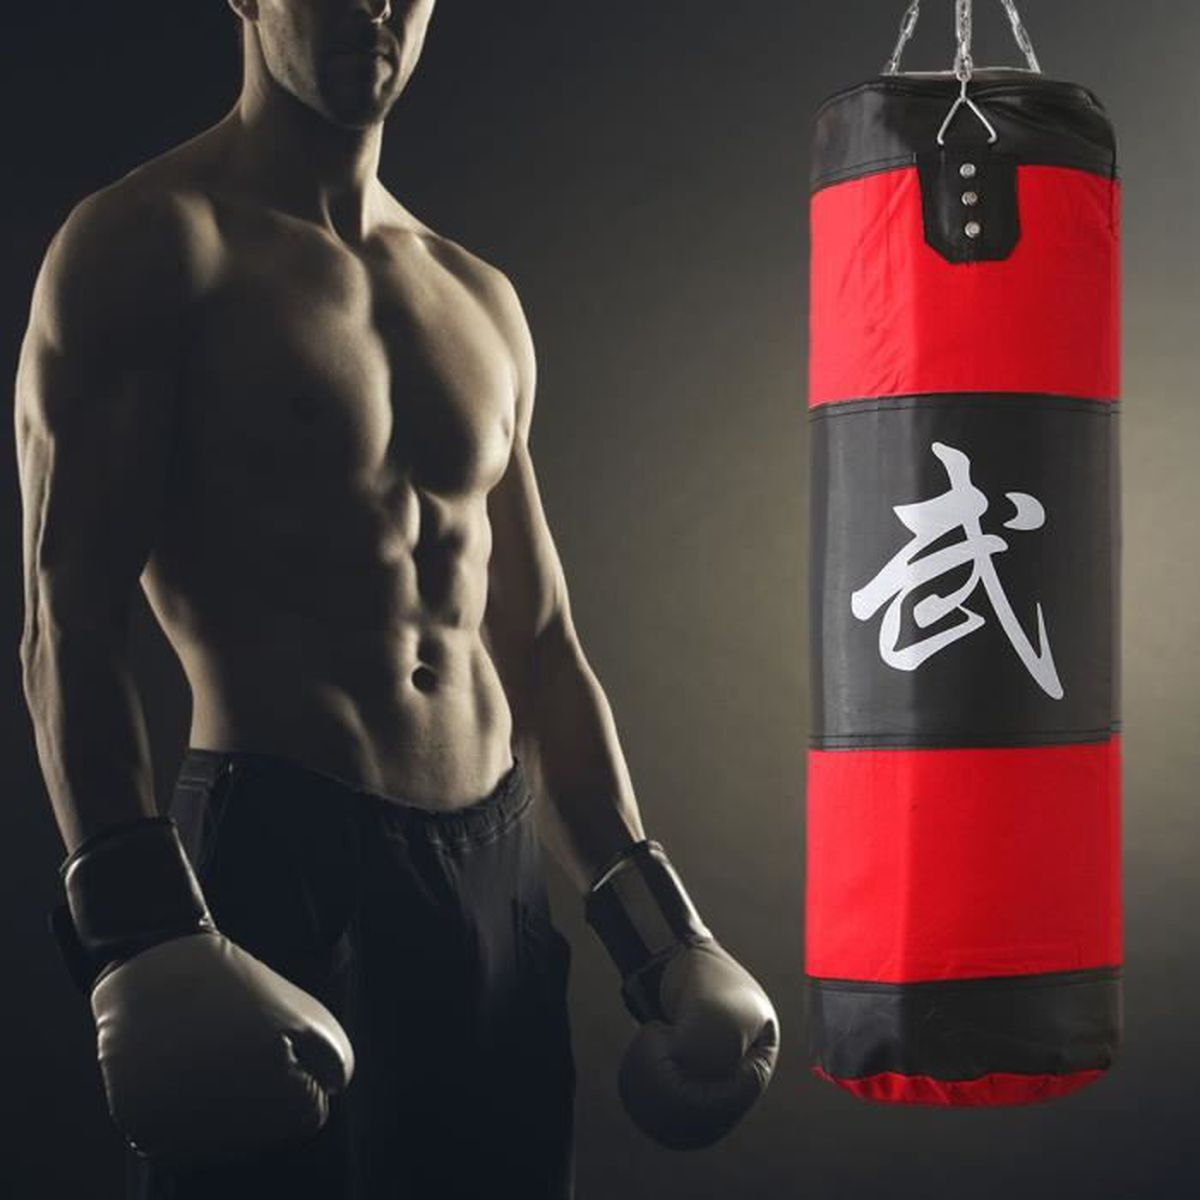 sac de frappe boxing sport fitness combat punching boxe. Black Bedroom Furniture Sets. Home Design Ideas